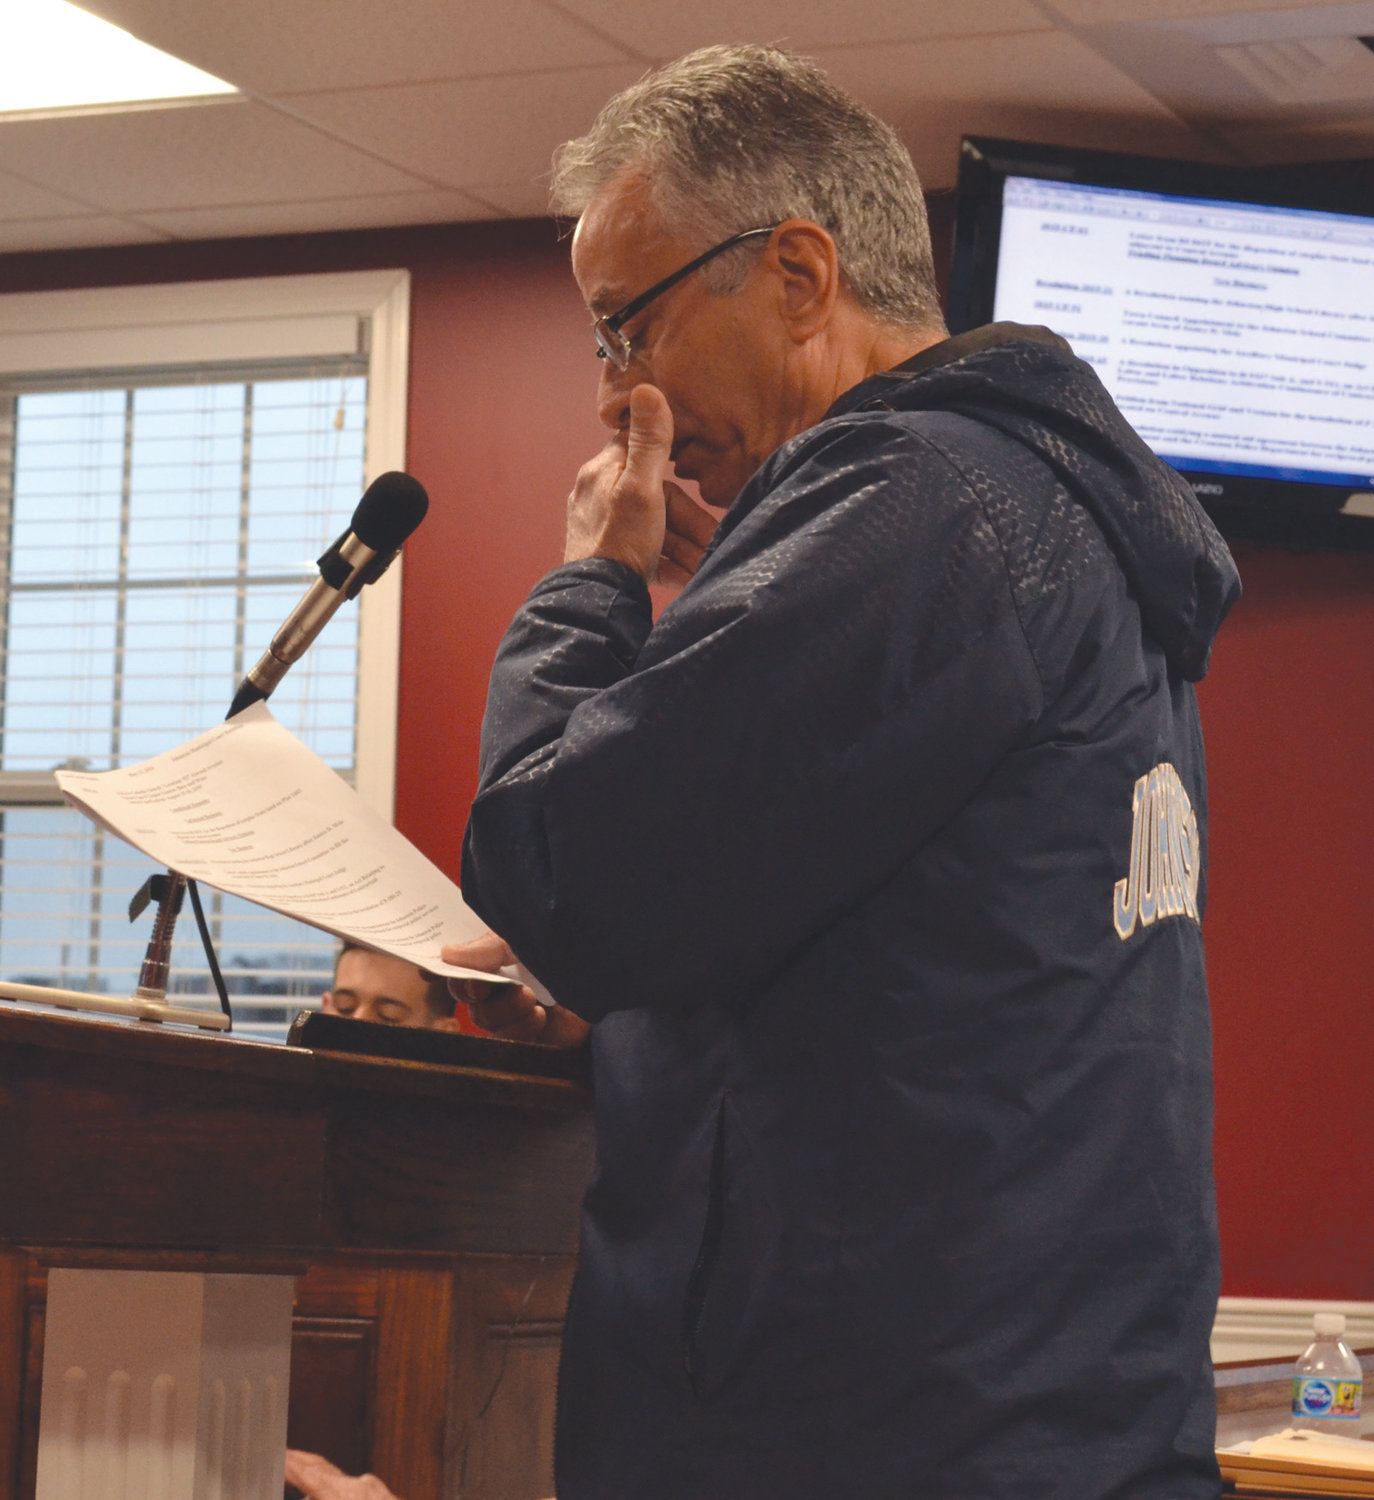 'SHE CARED': Robert LaFazia, who was installed as the new School Committee chair Tuesday, spoke glowingly of his predecessor and dear friend, Janice Mele, during Monday's Town Council meeting. Mele passed away last month at 69.